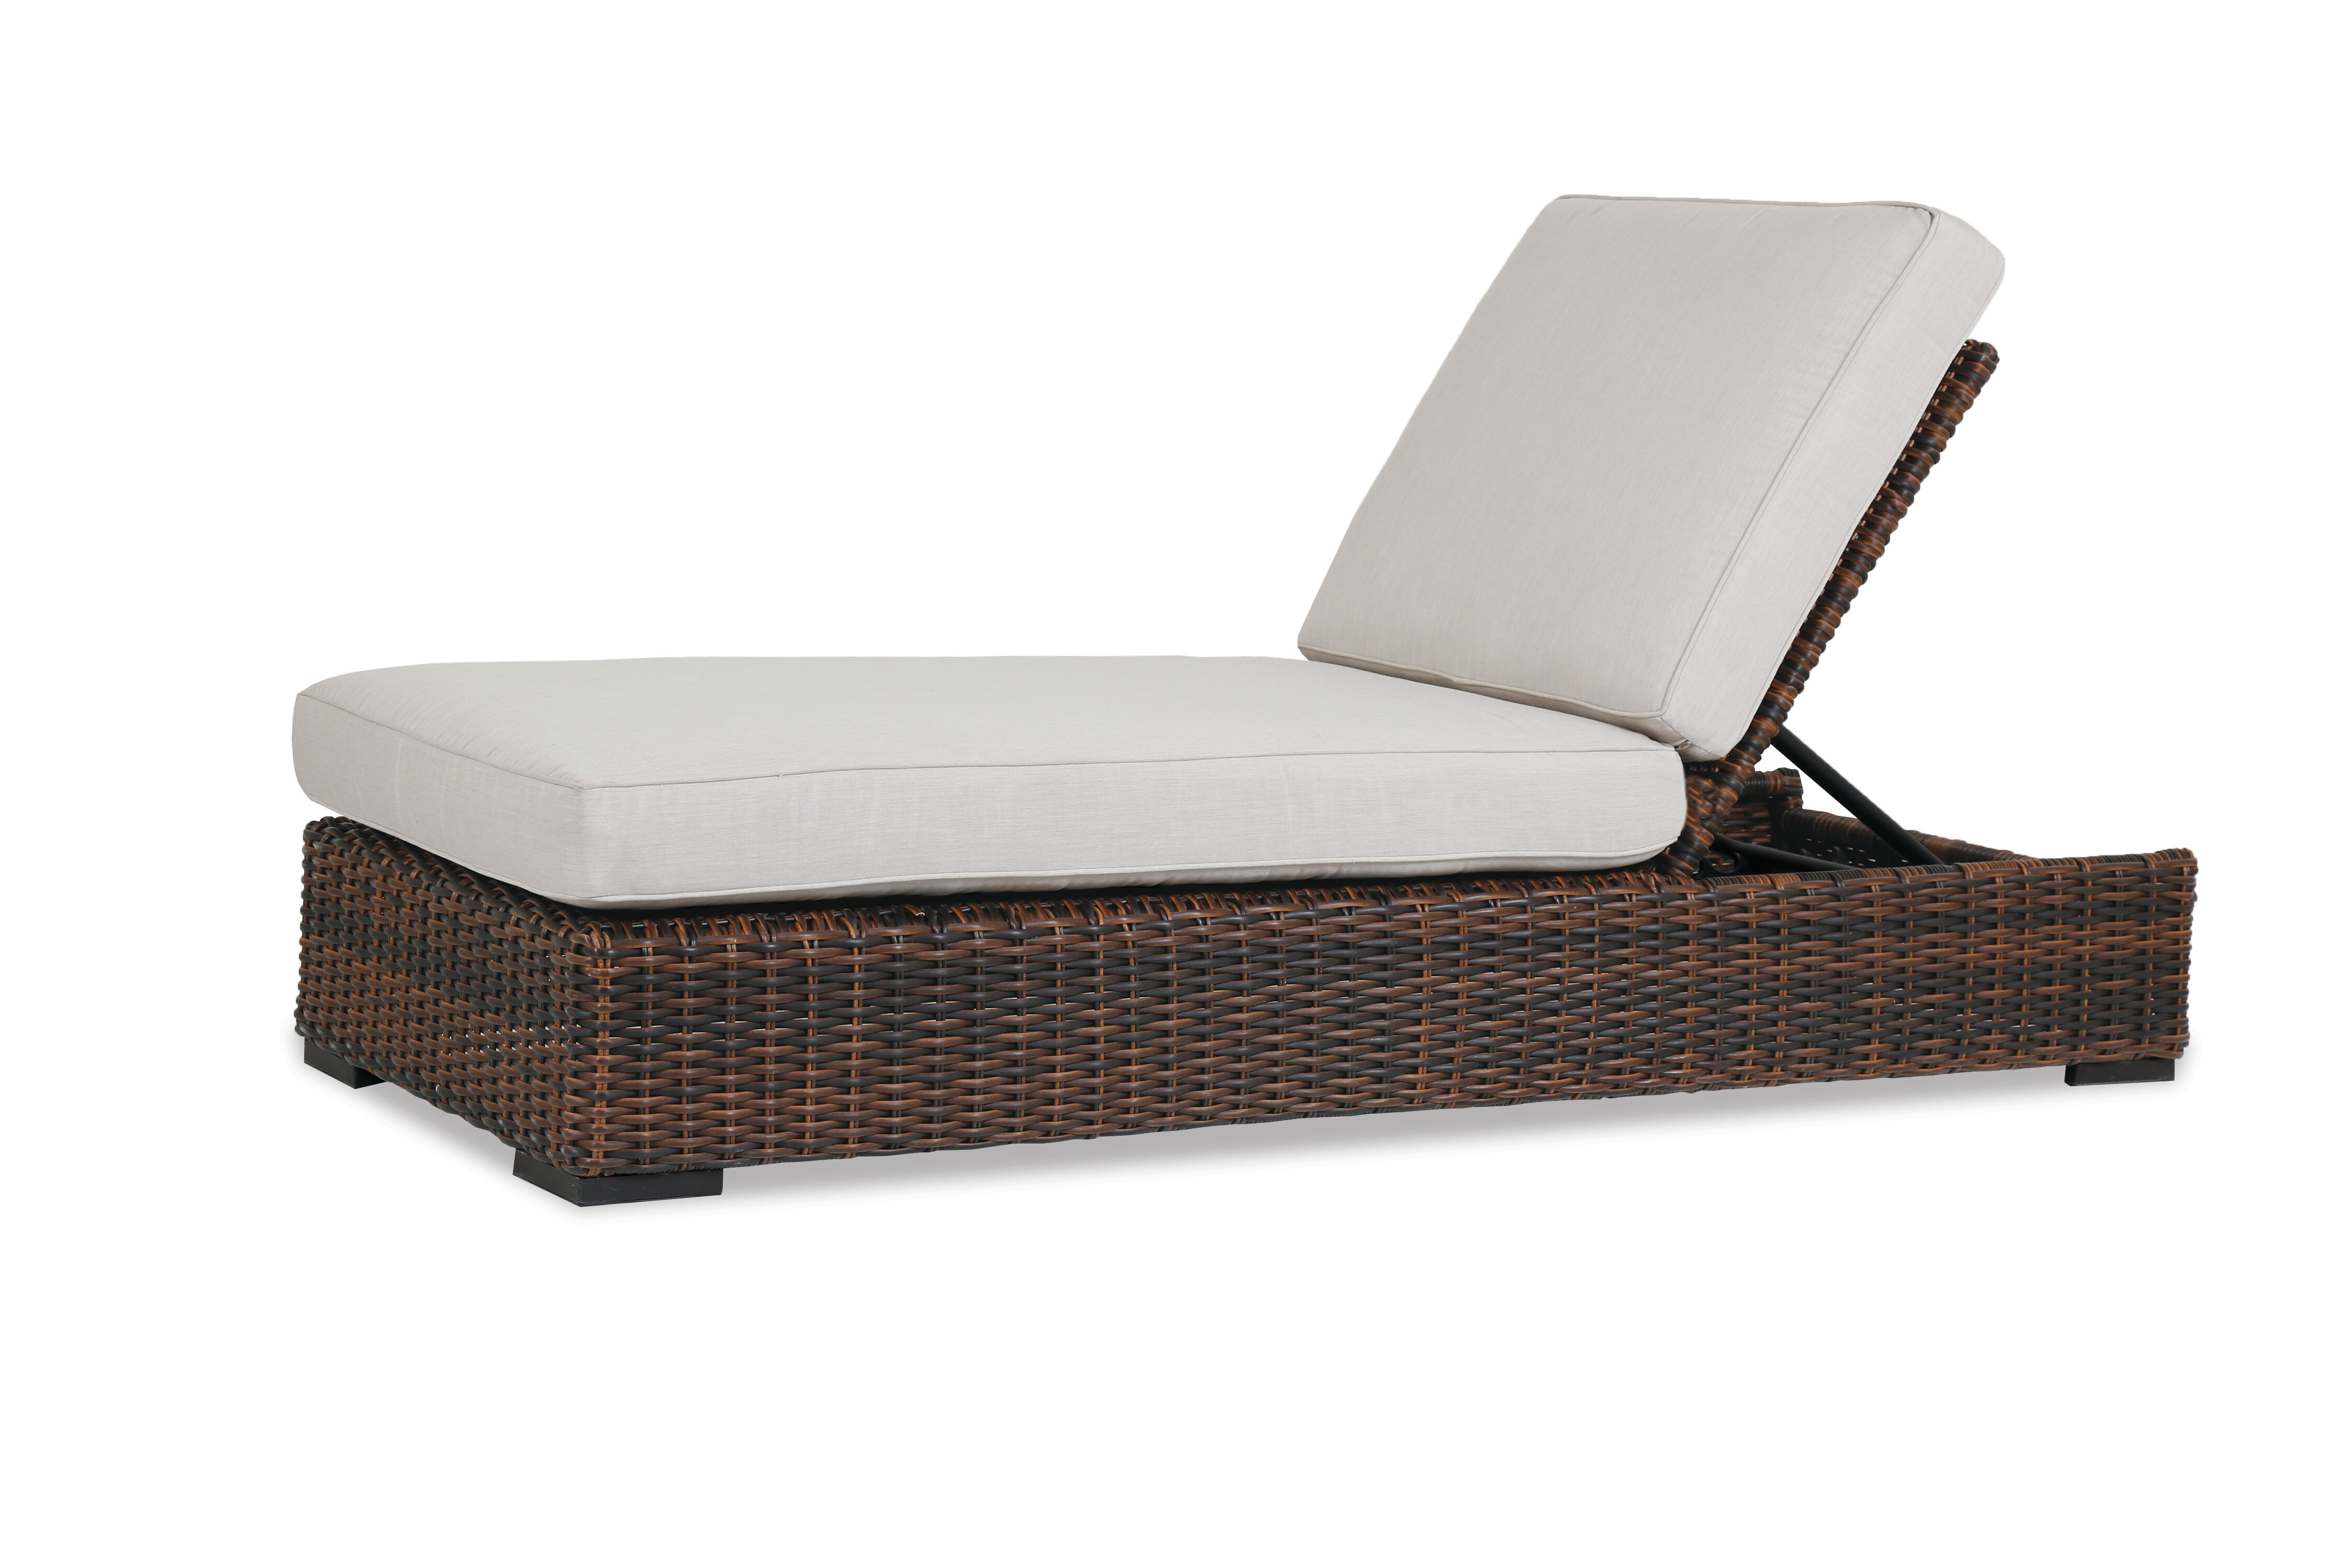 Sunset West Solana Reclining Chaise Lounge With Cushion Wayfair